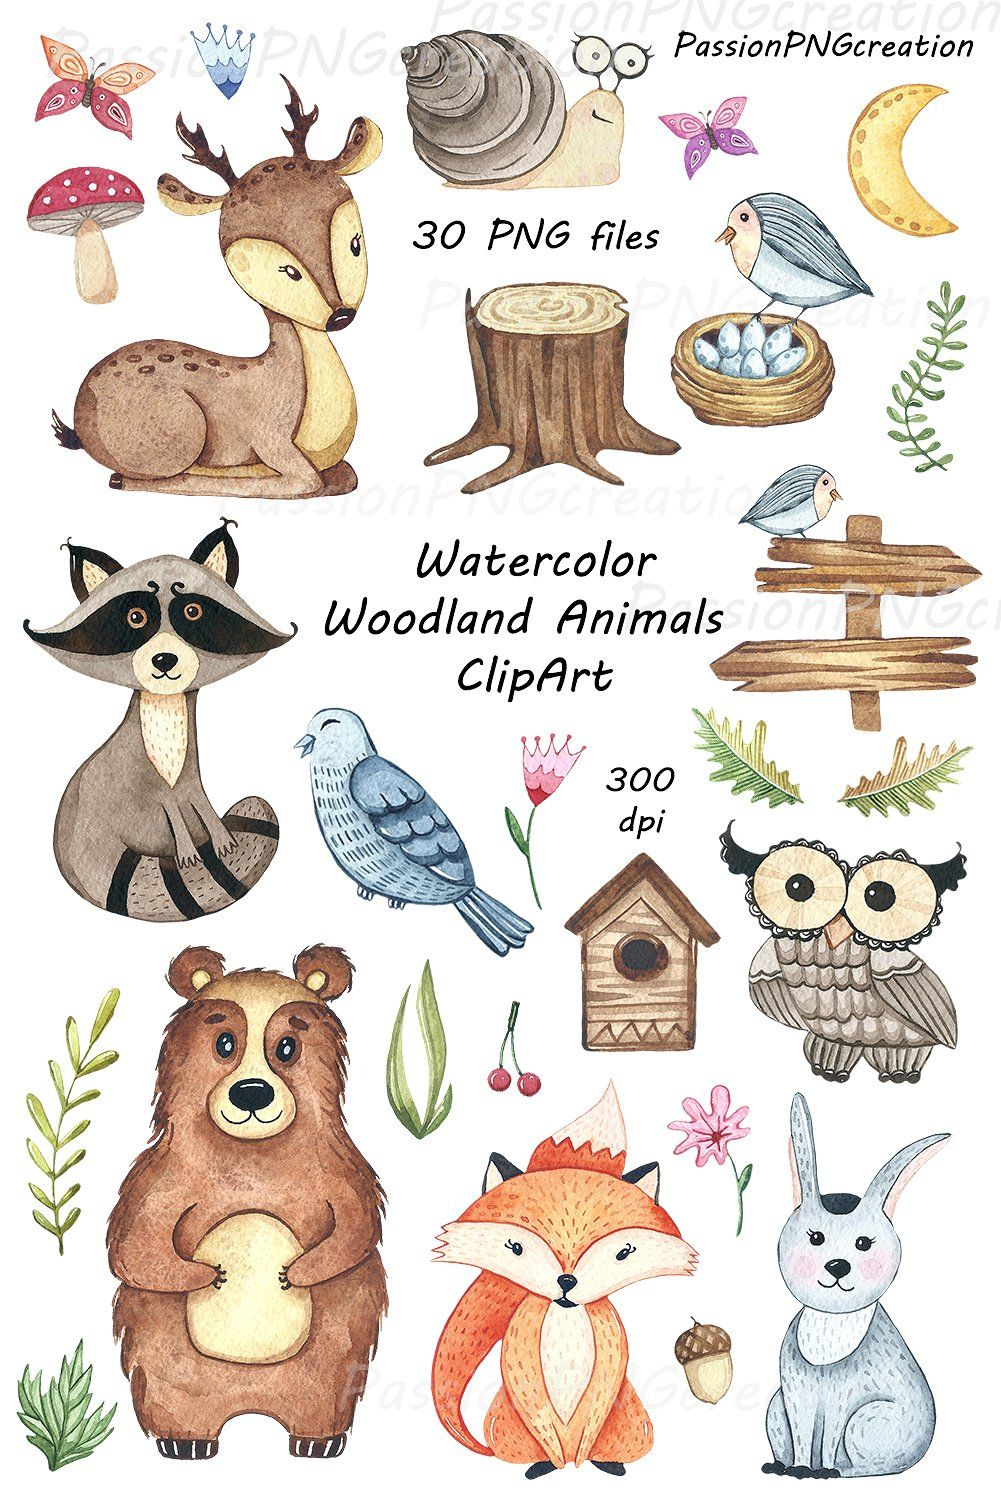 Watercolor Woodland Animals Clipart Animal Clipart Woodland Animals Etsy Watercolor